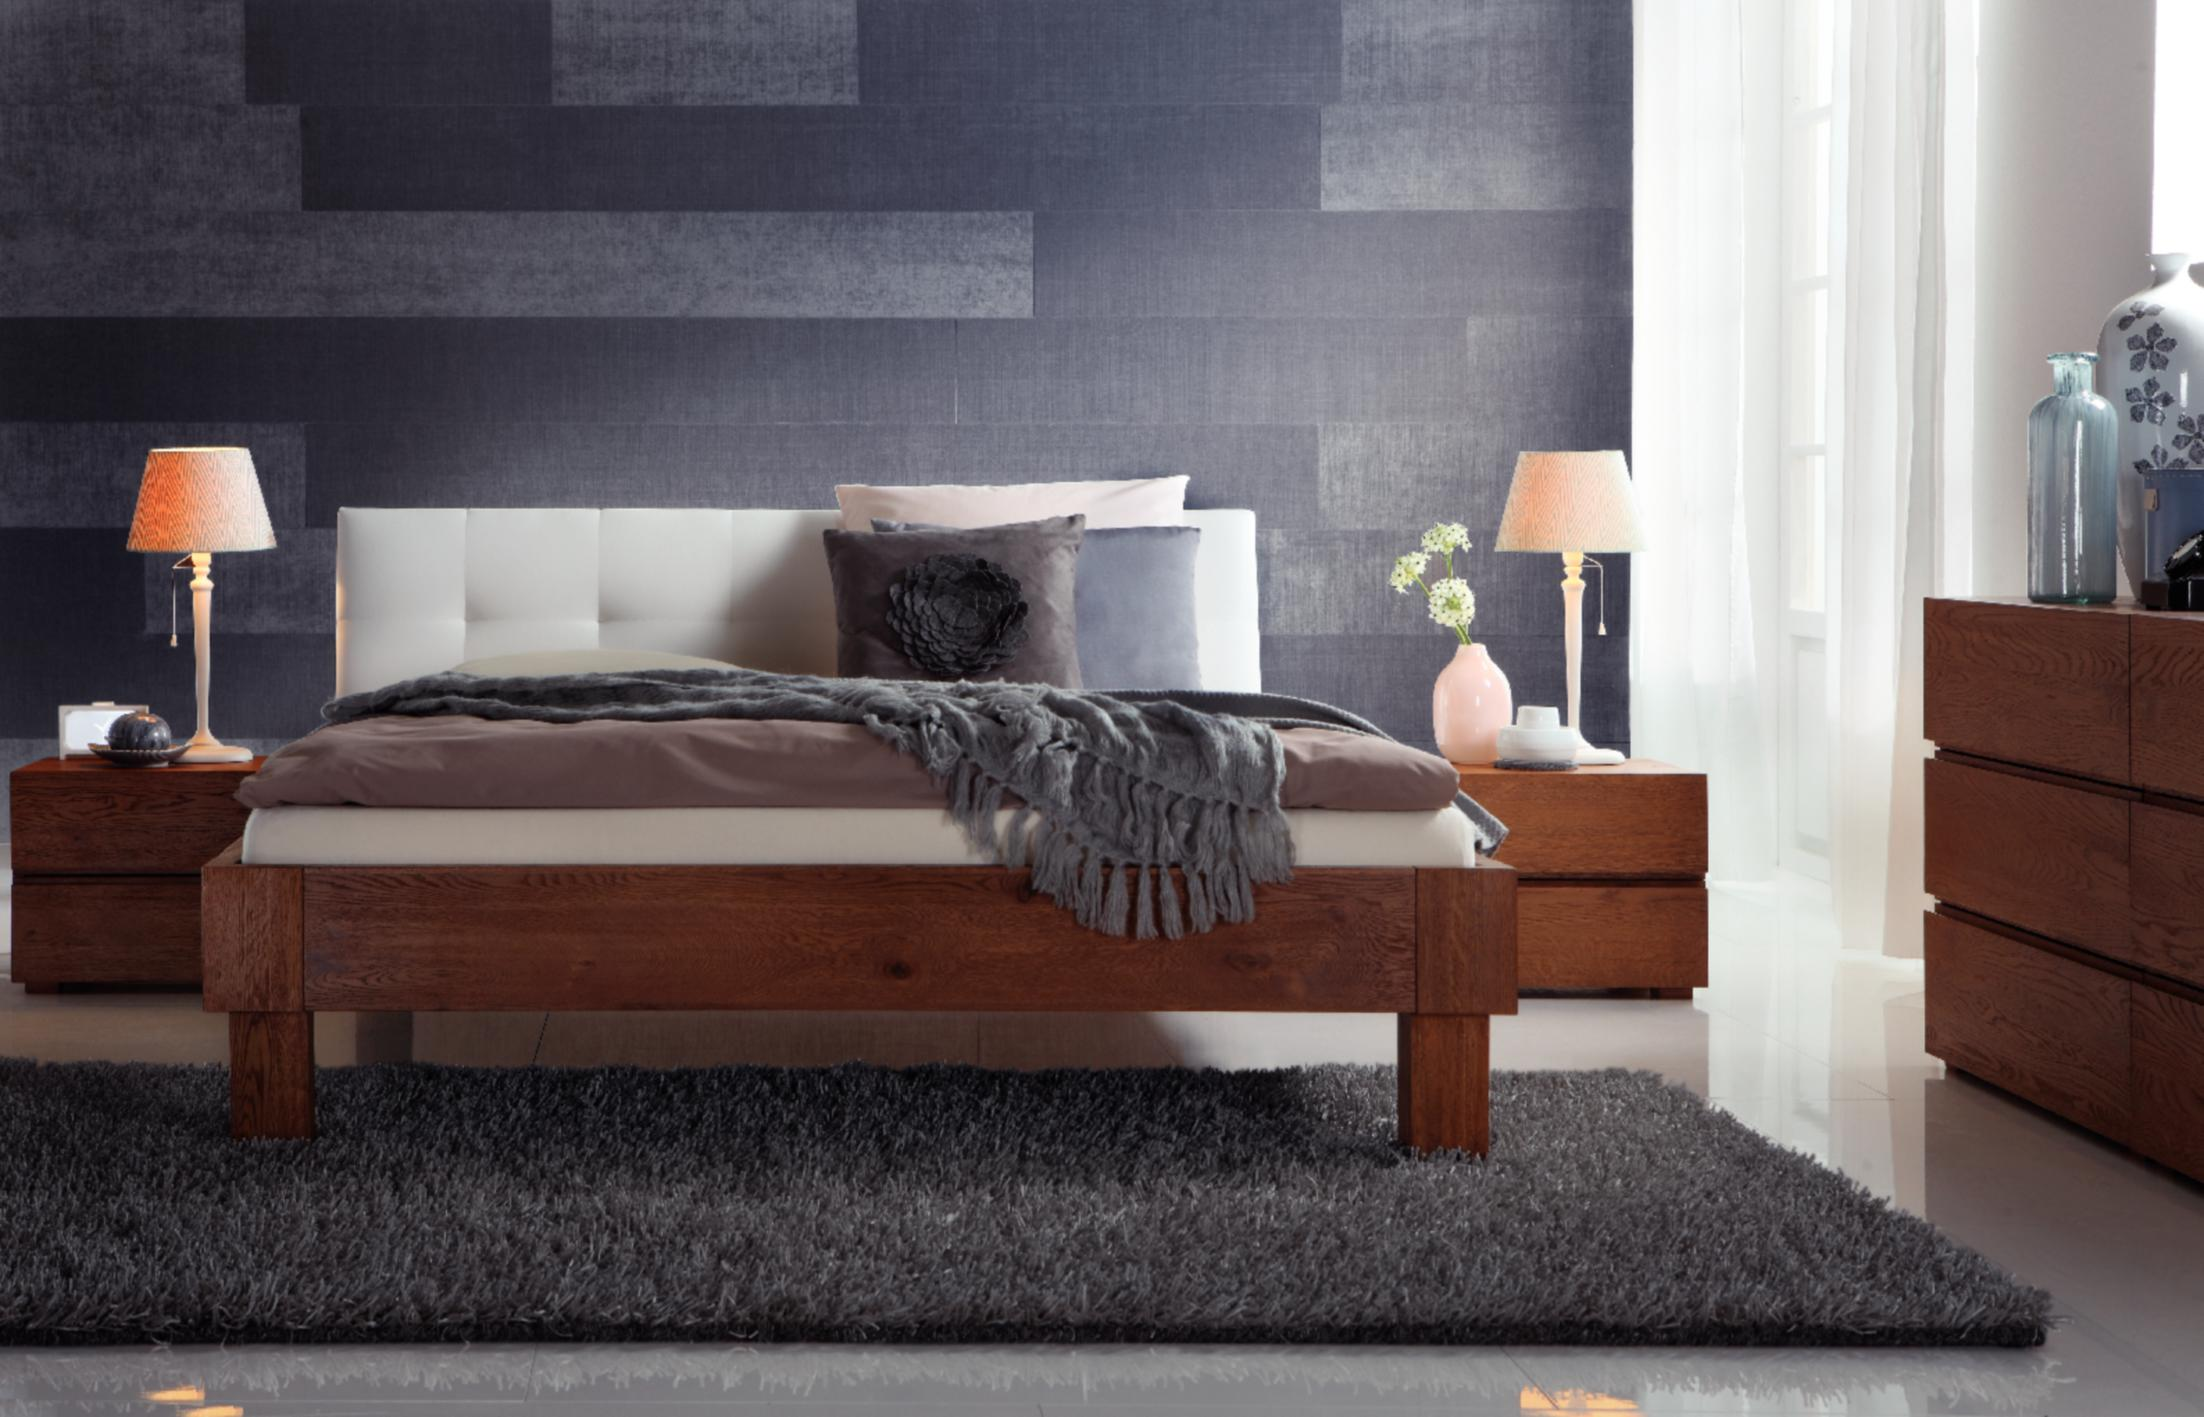 jetzt entdecken wasserbett mit massivholz bettrahmen. Black Bedroom Furniture Sets. Home Design Ideas